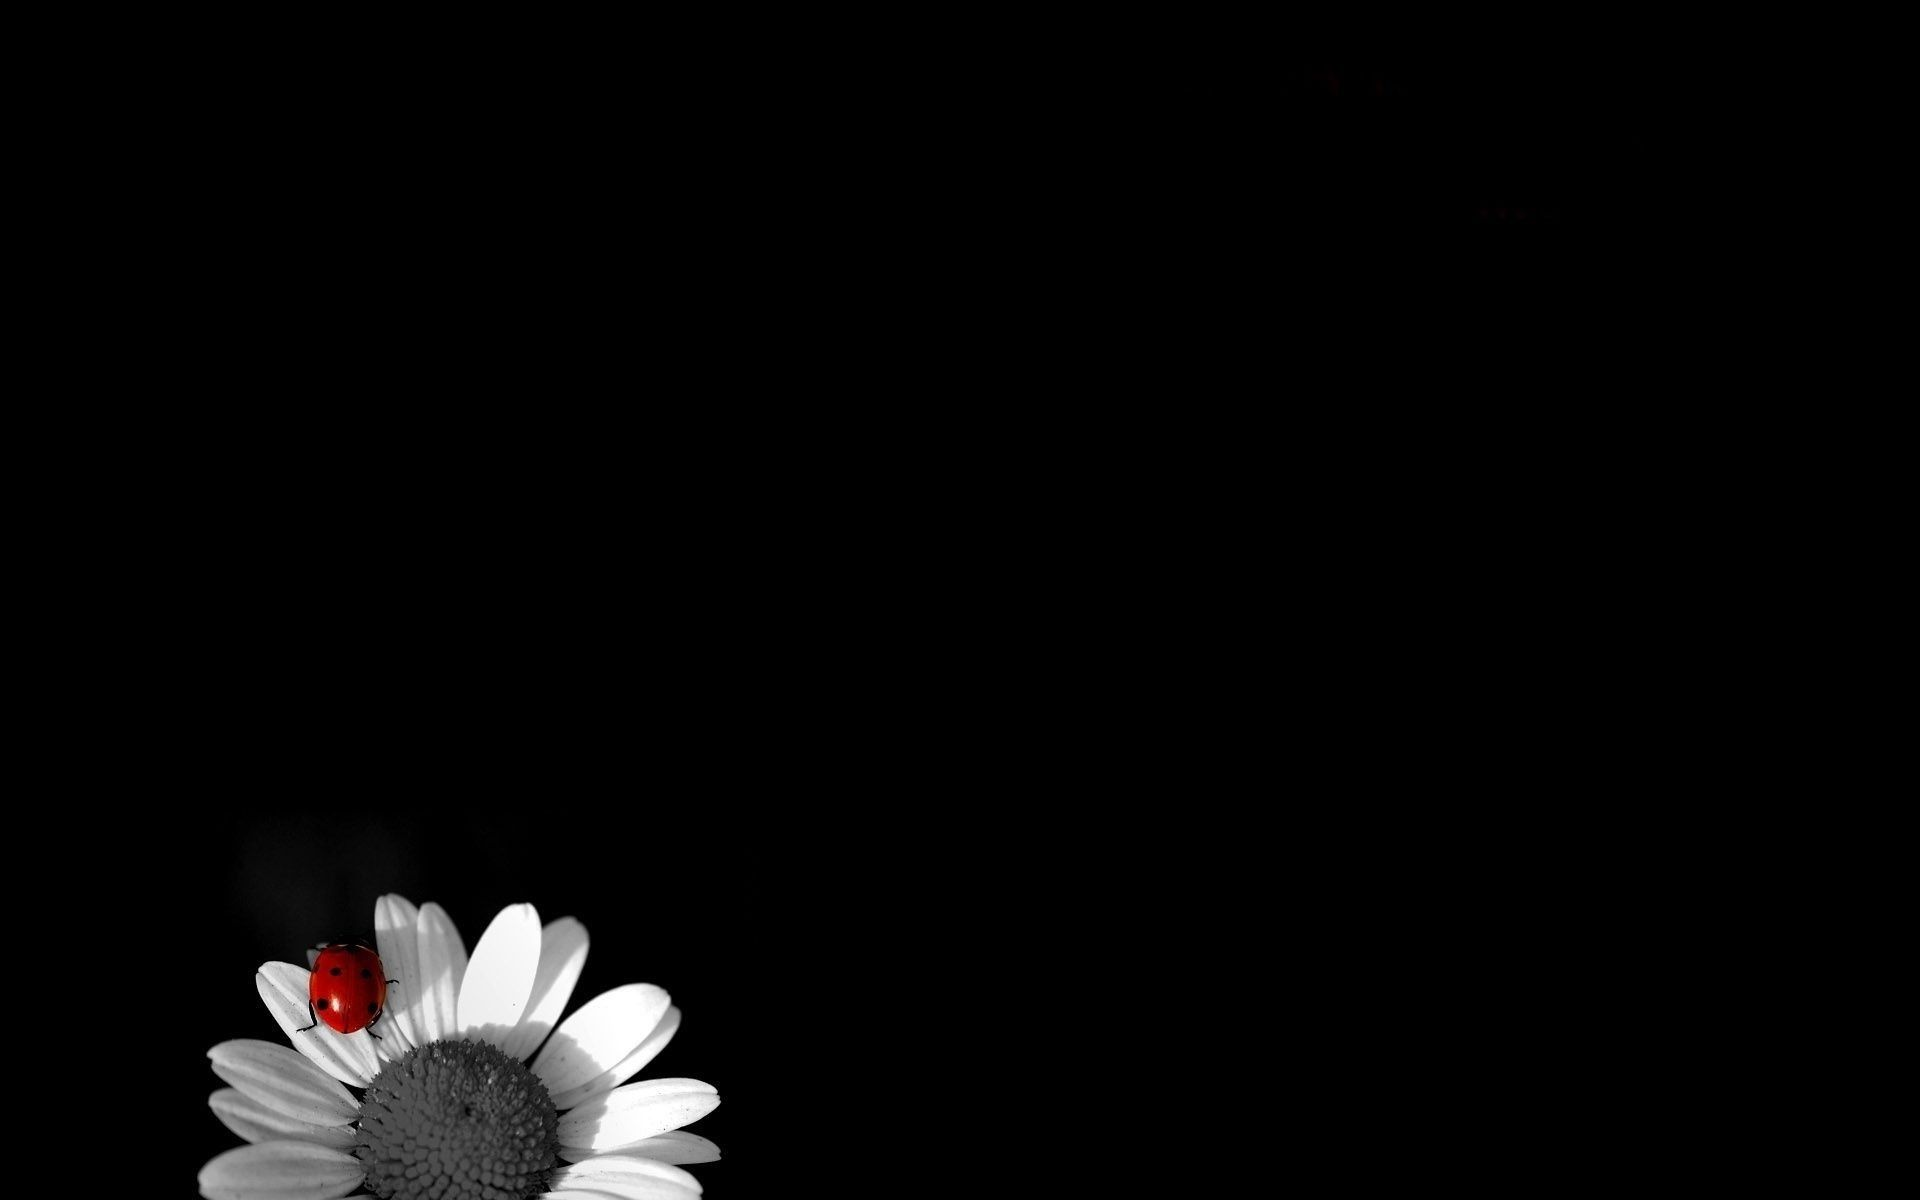 Black And White Daisy Wallpapers Top Free Black And White Daisy